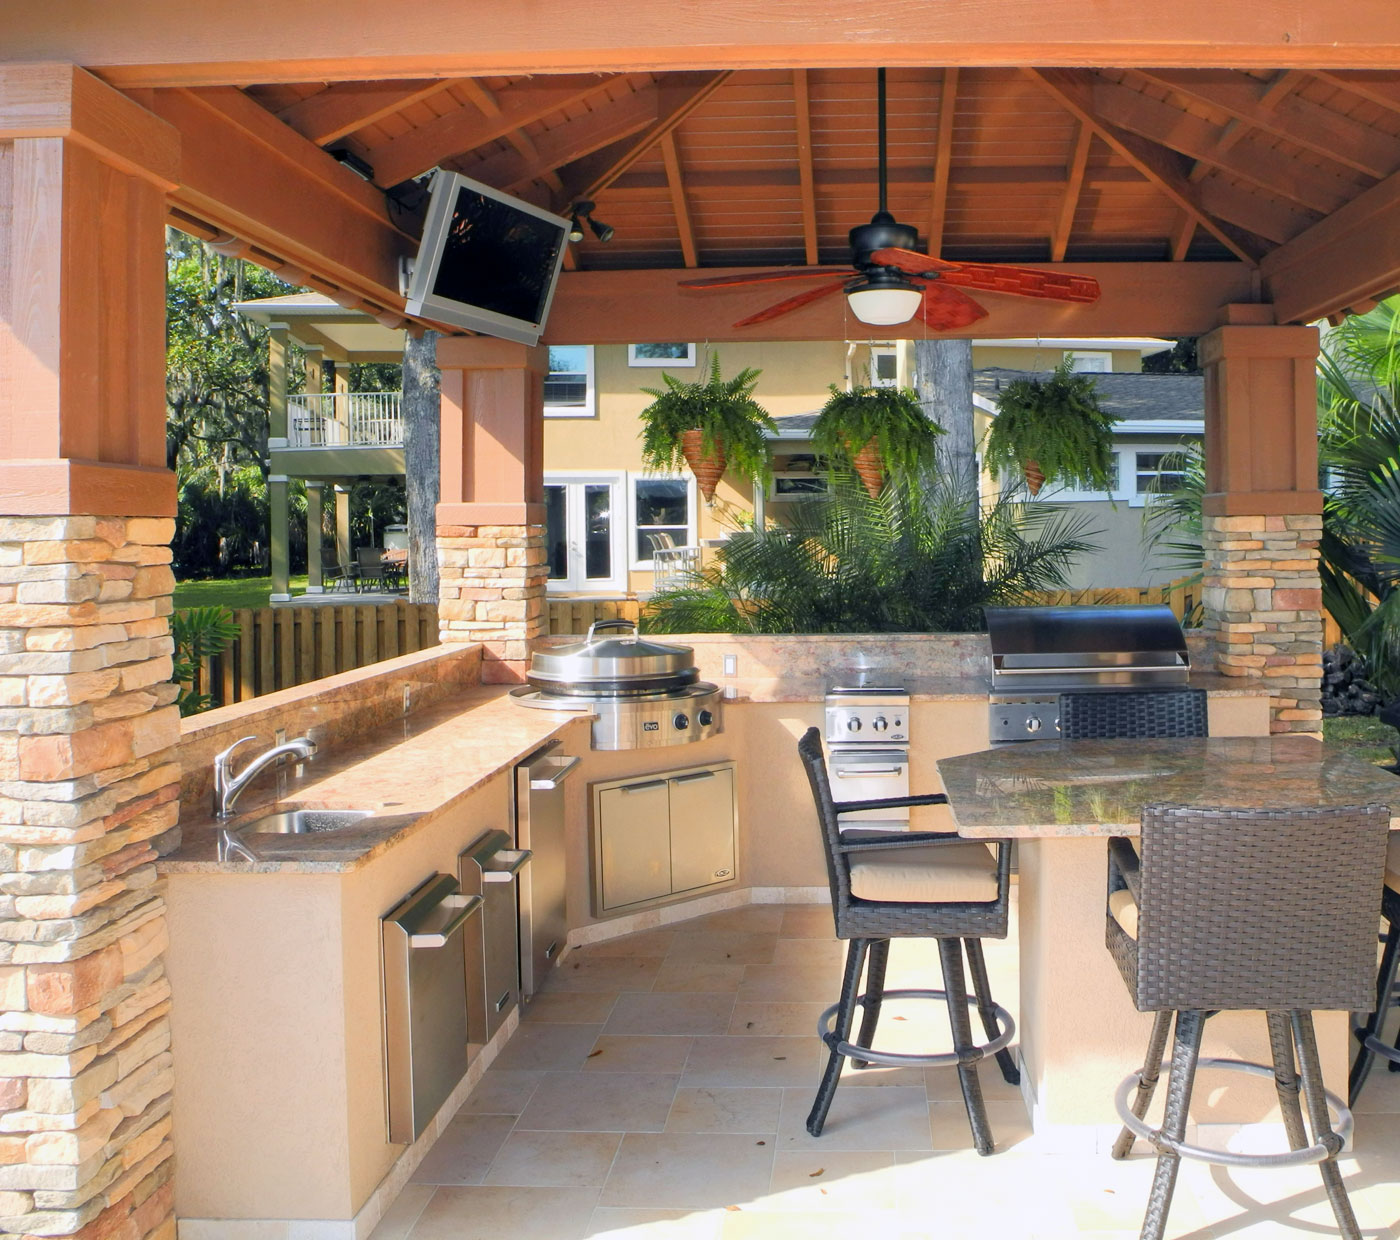 Evo outdoor kitchen gallery outdoorlux for Kitchen outdoor picture